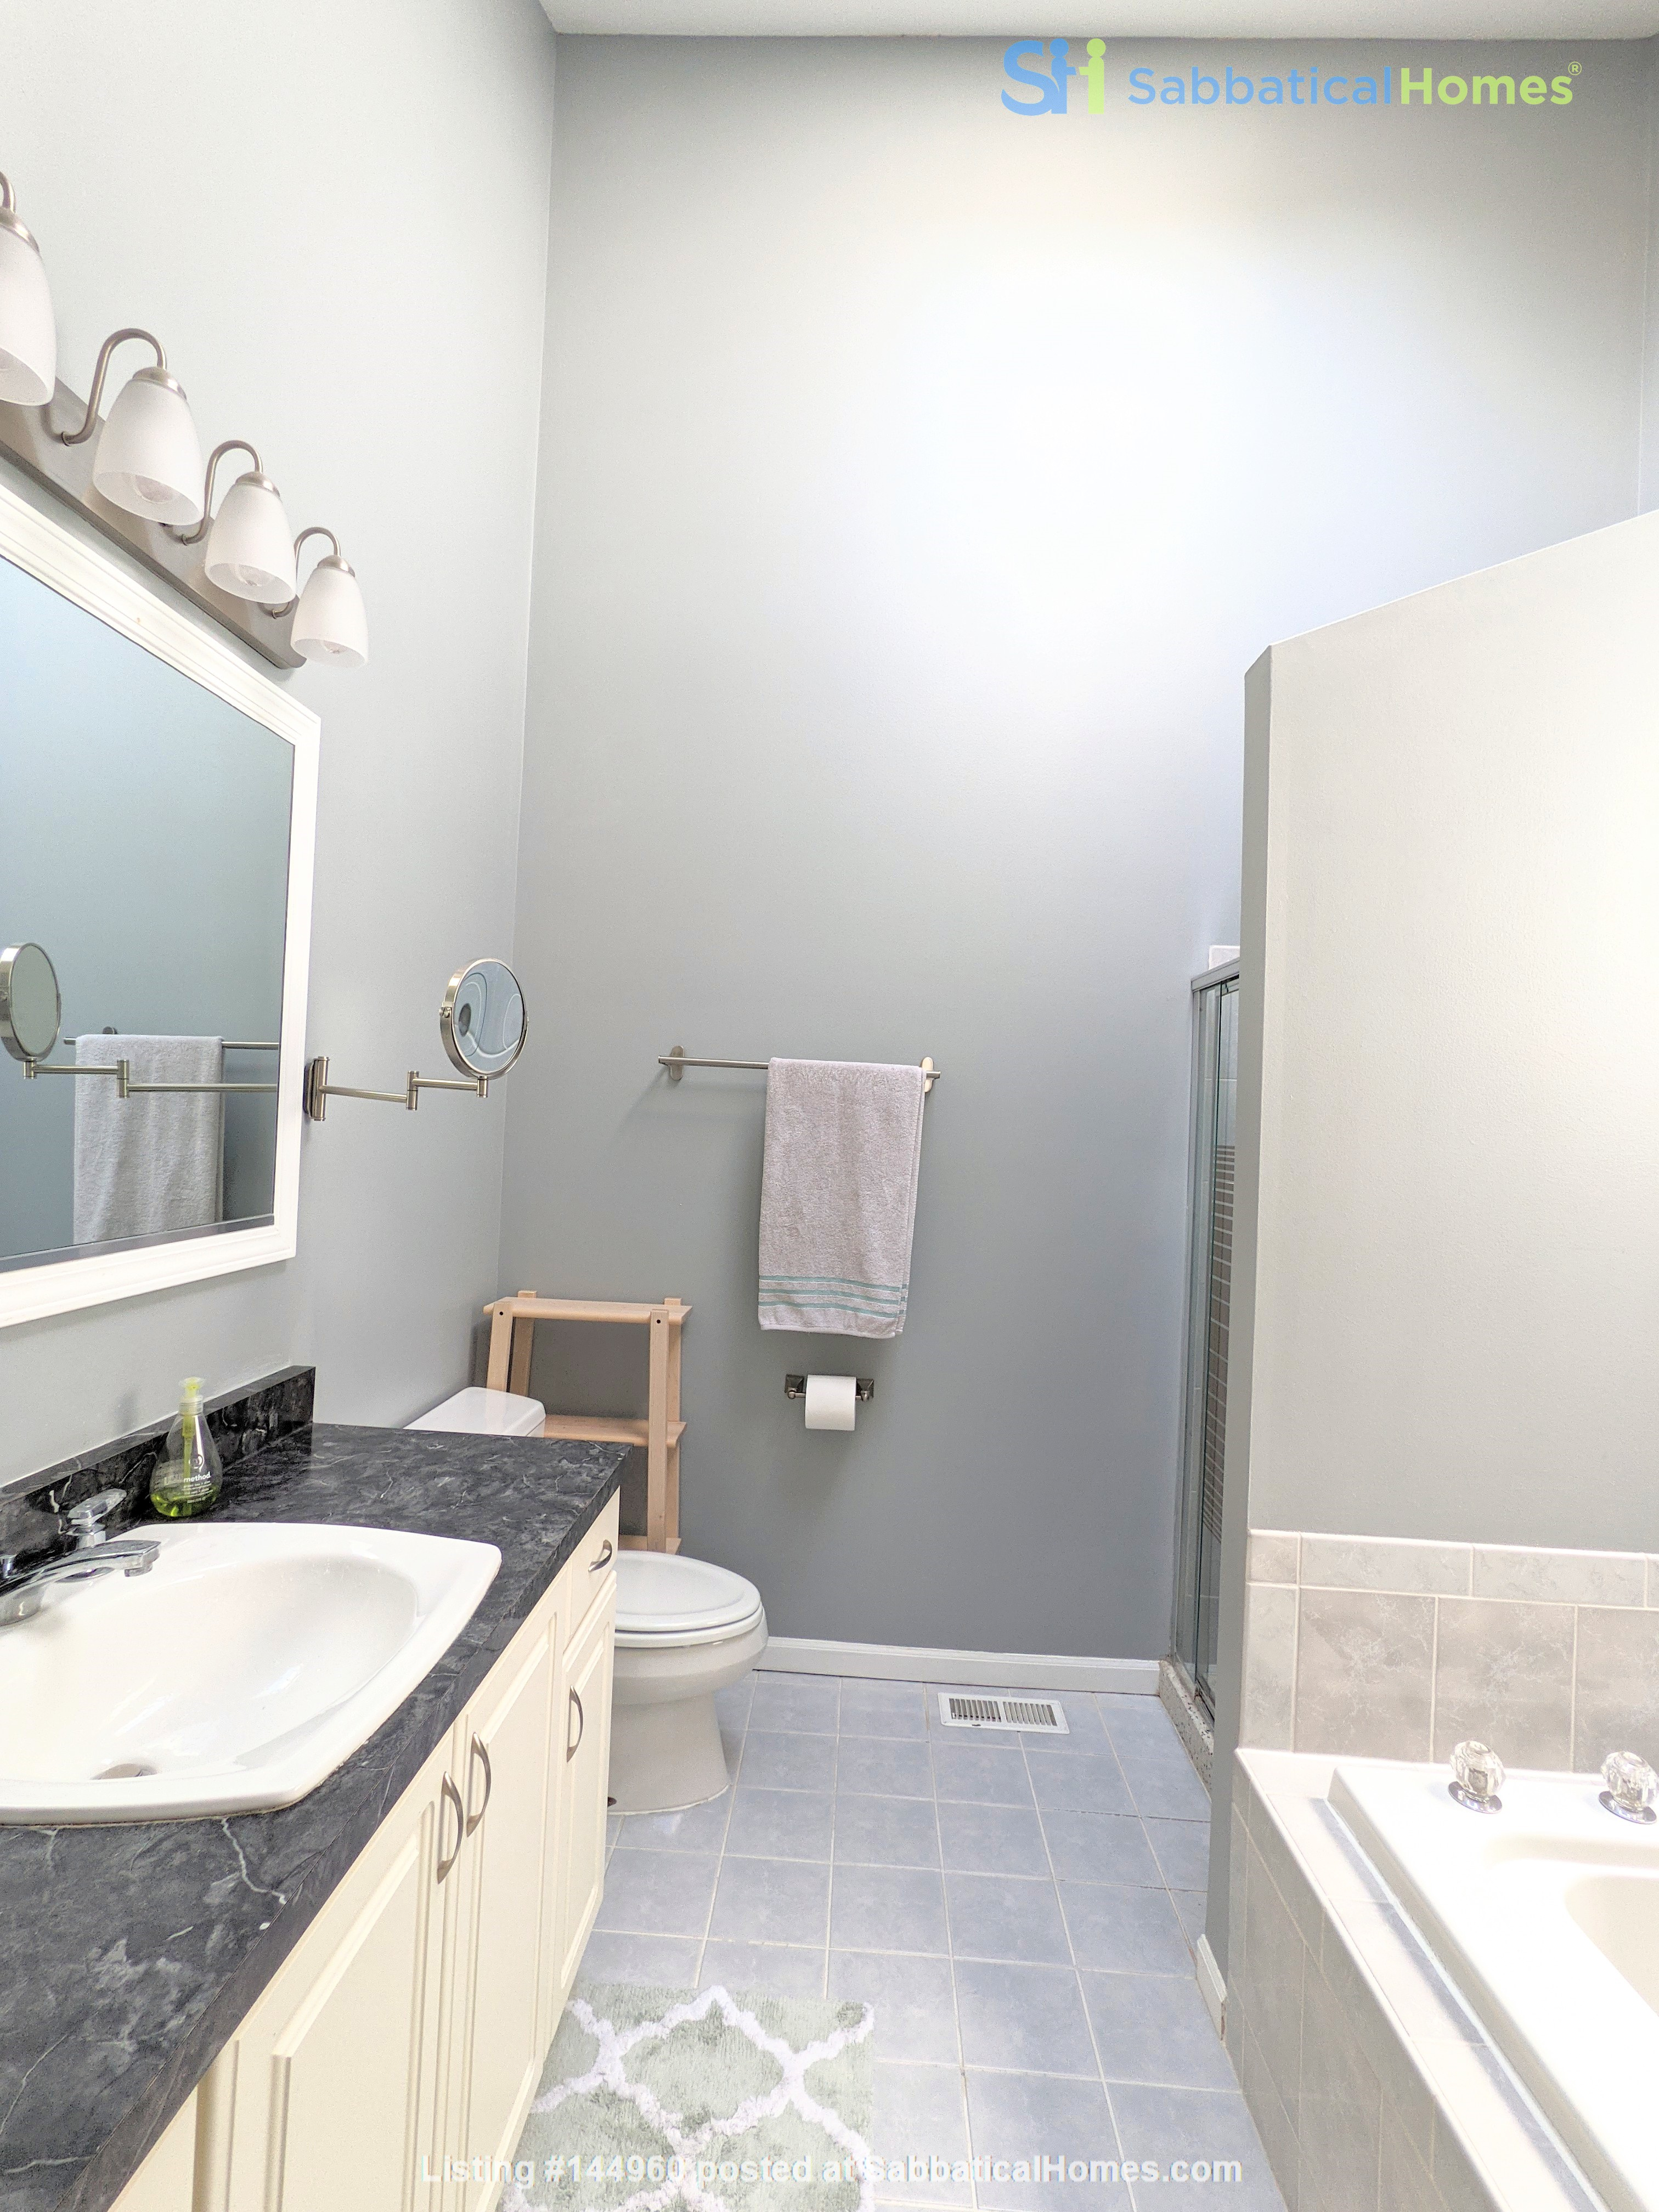 Spacious, fully furnished 3 bd/2.5 ba townhome in Lincoln Park Home Rental in Chicago, Illinois, United States 5